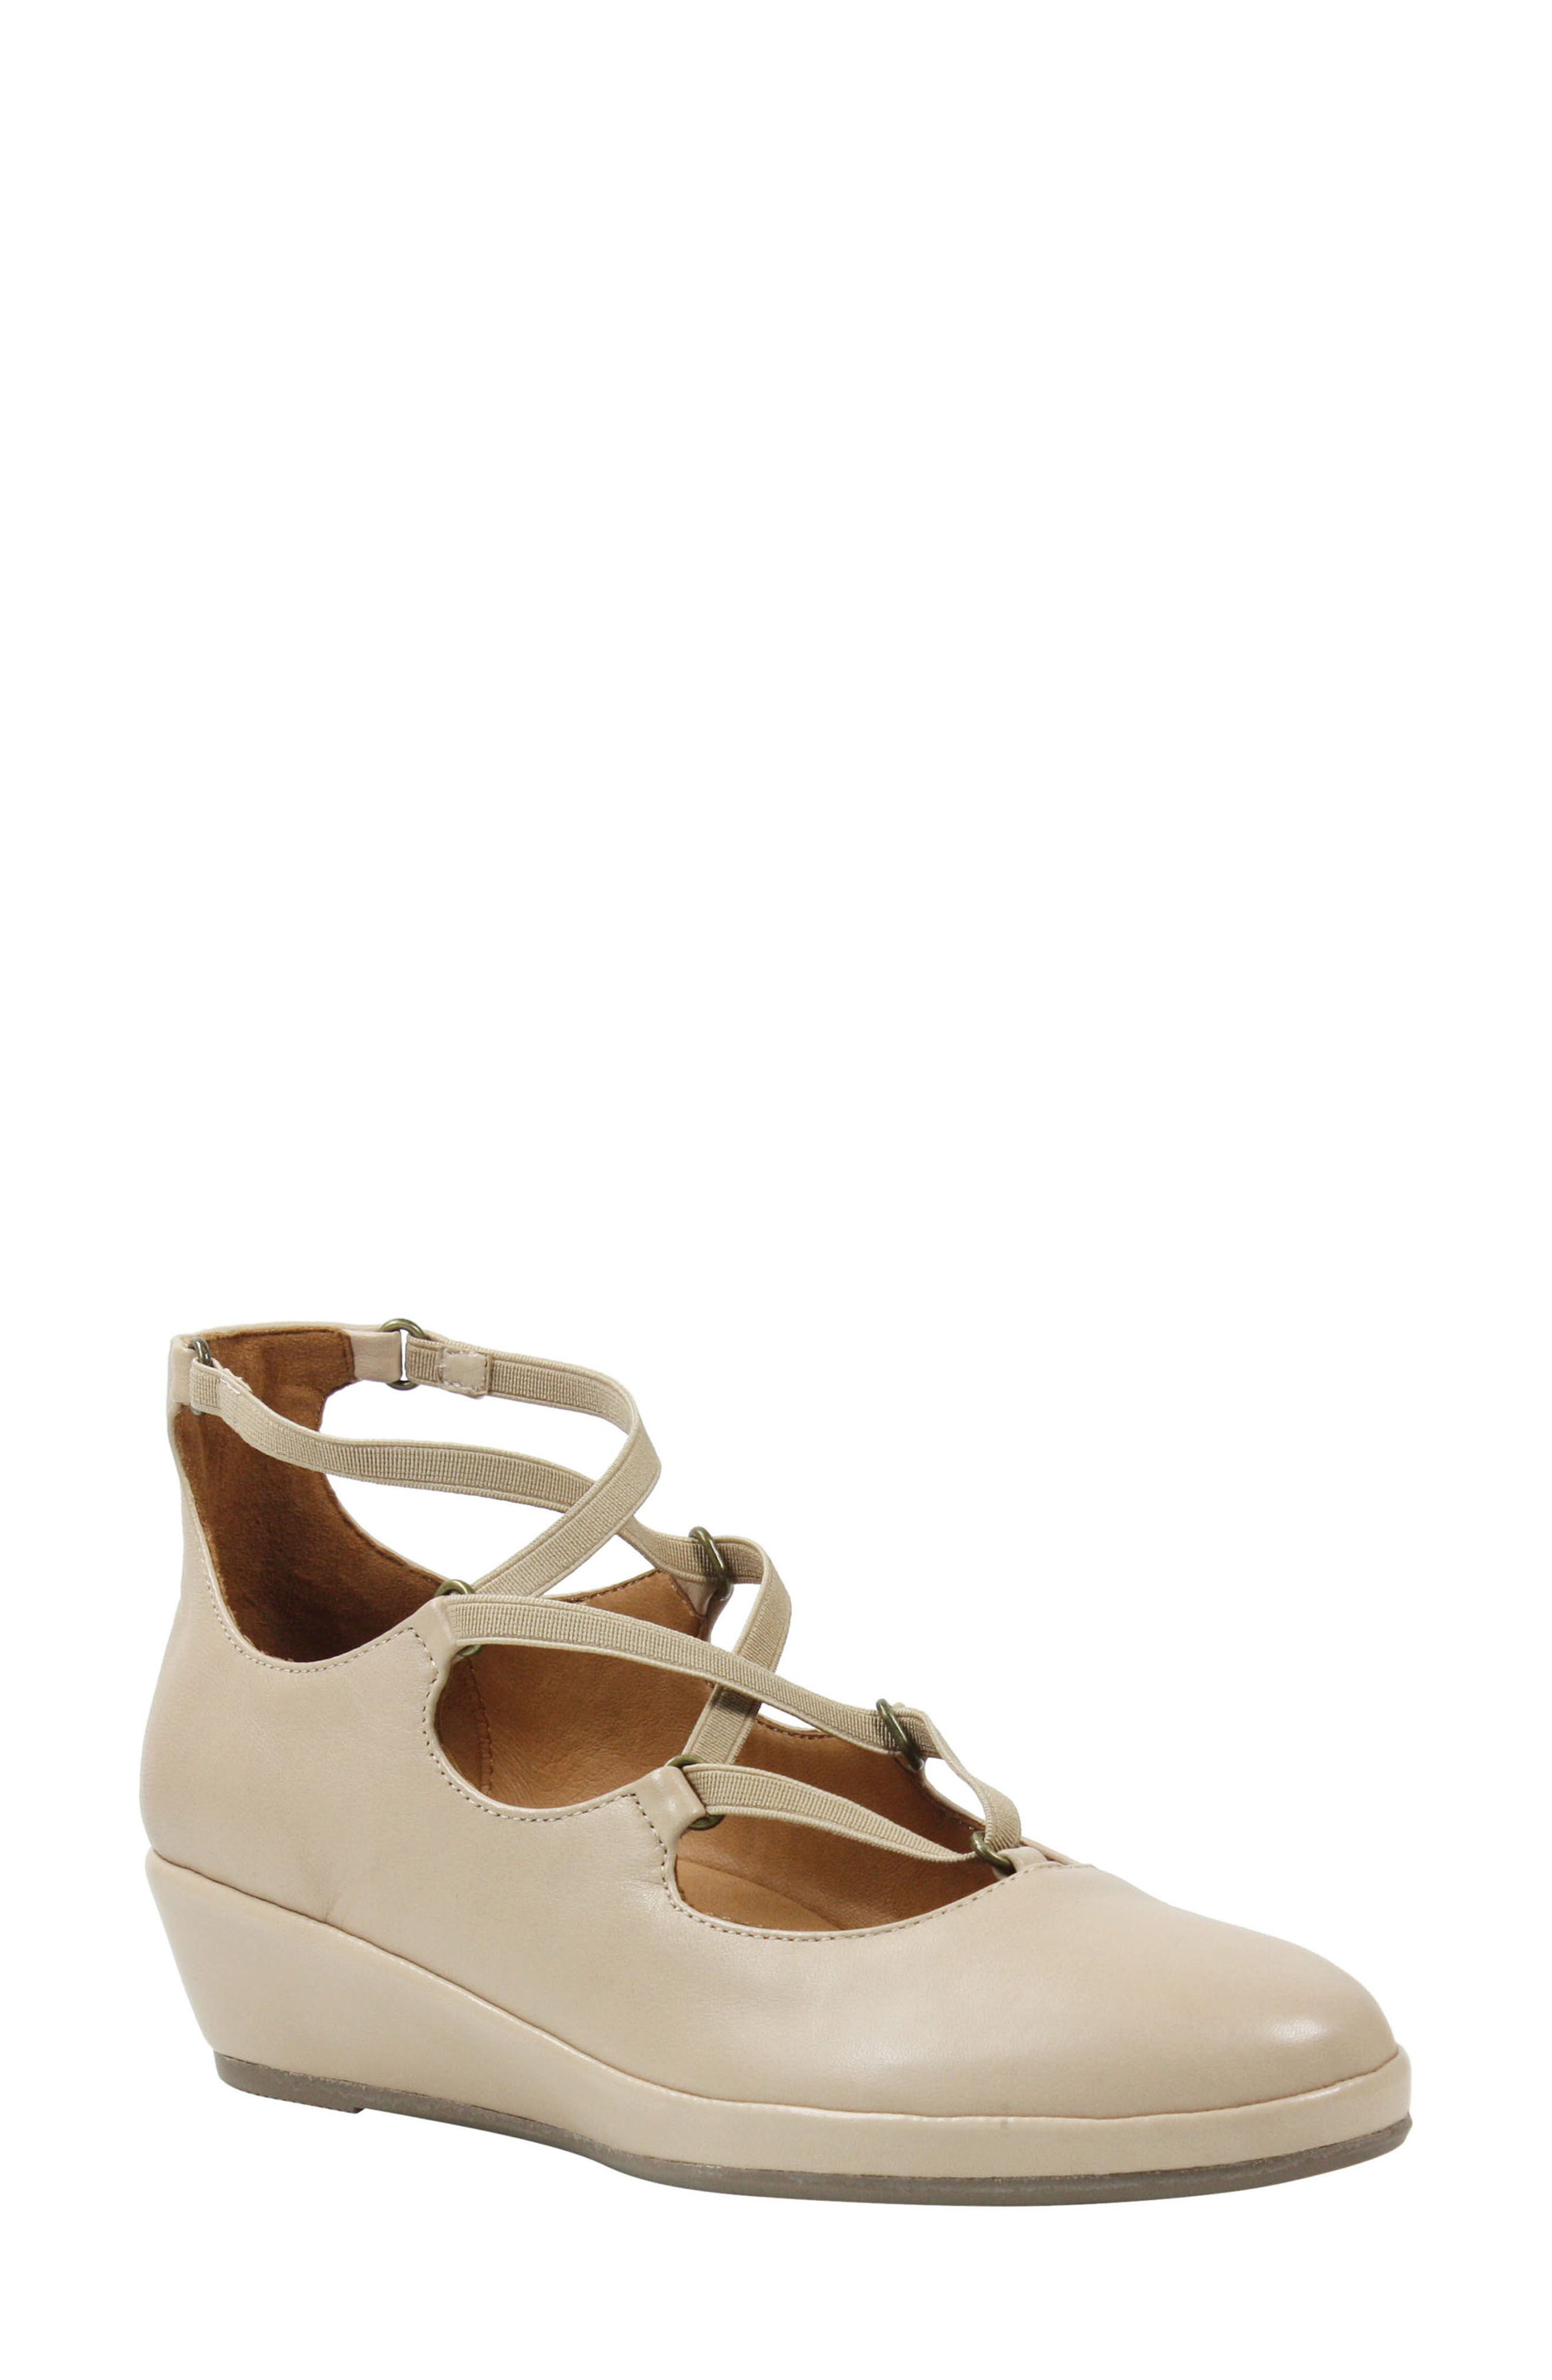 Benham Wedge,                             Main thumbnail 1, color,                             Nude Leather